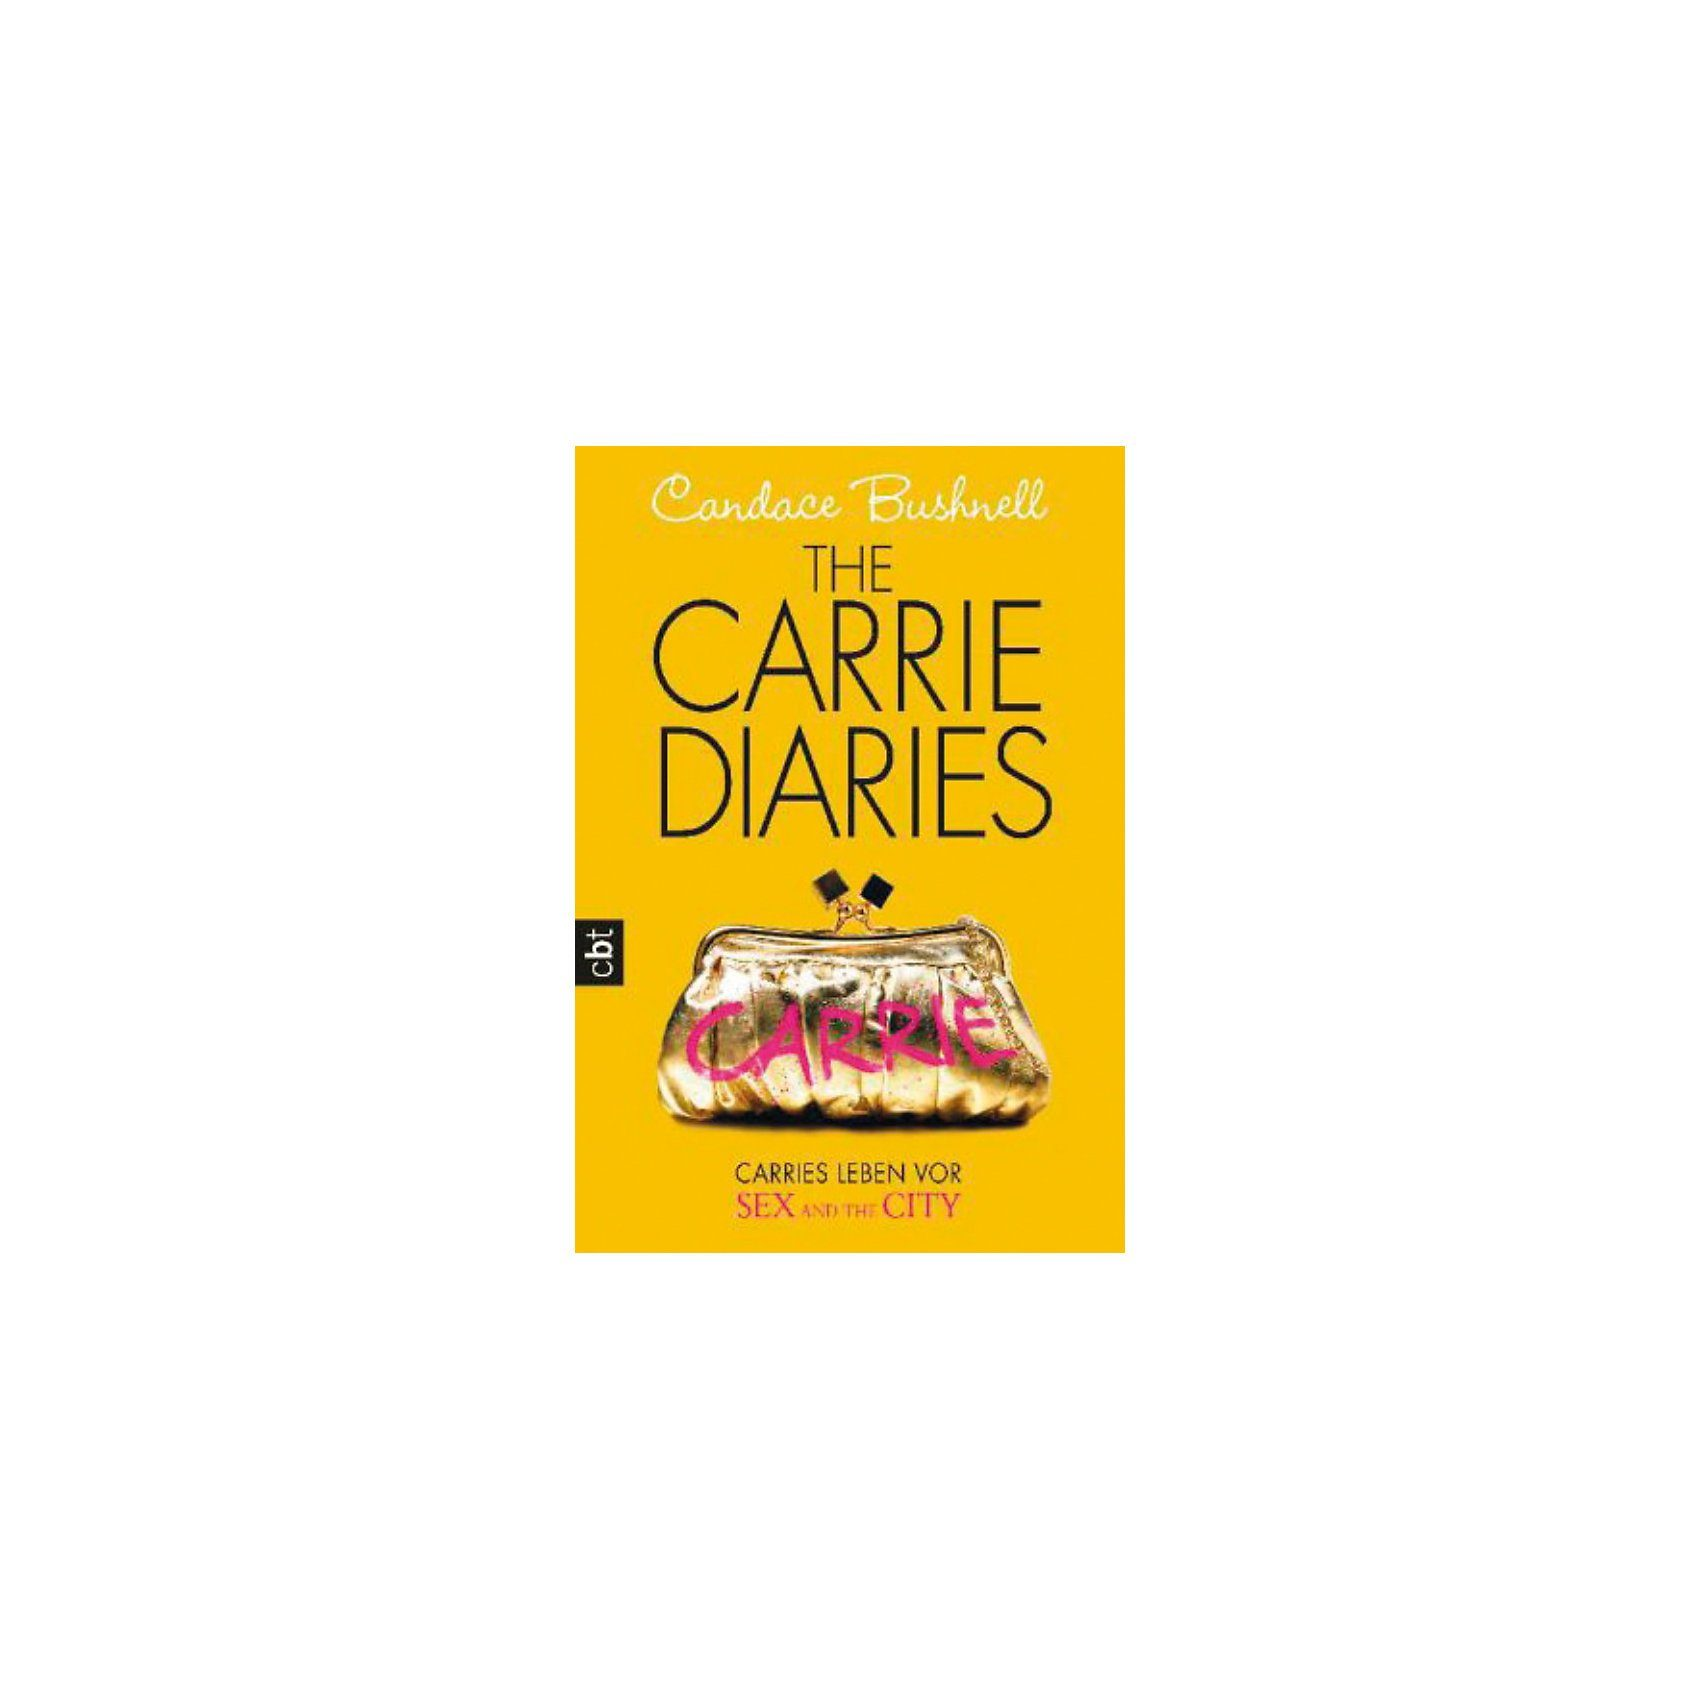 cbj + cbt Verlag The Carrie Diaries - Carries Leben vor Sex and the City